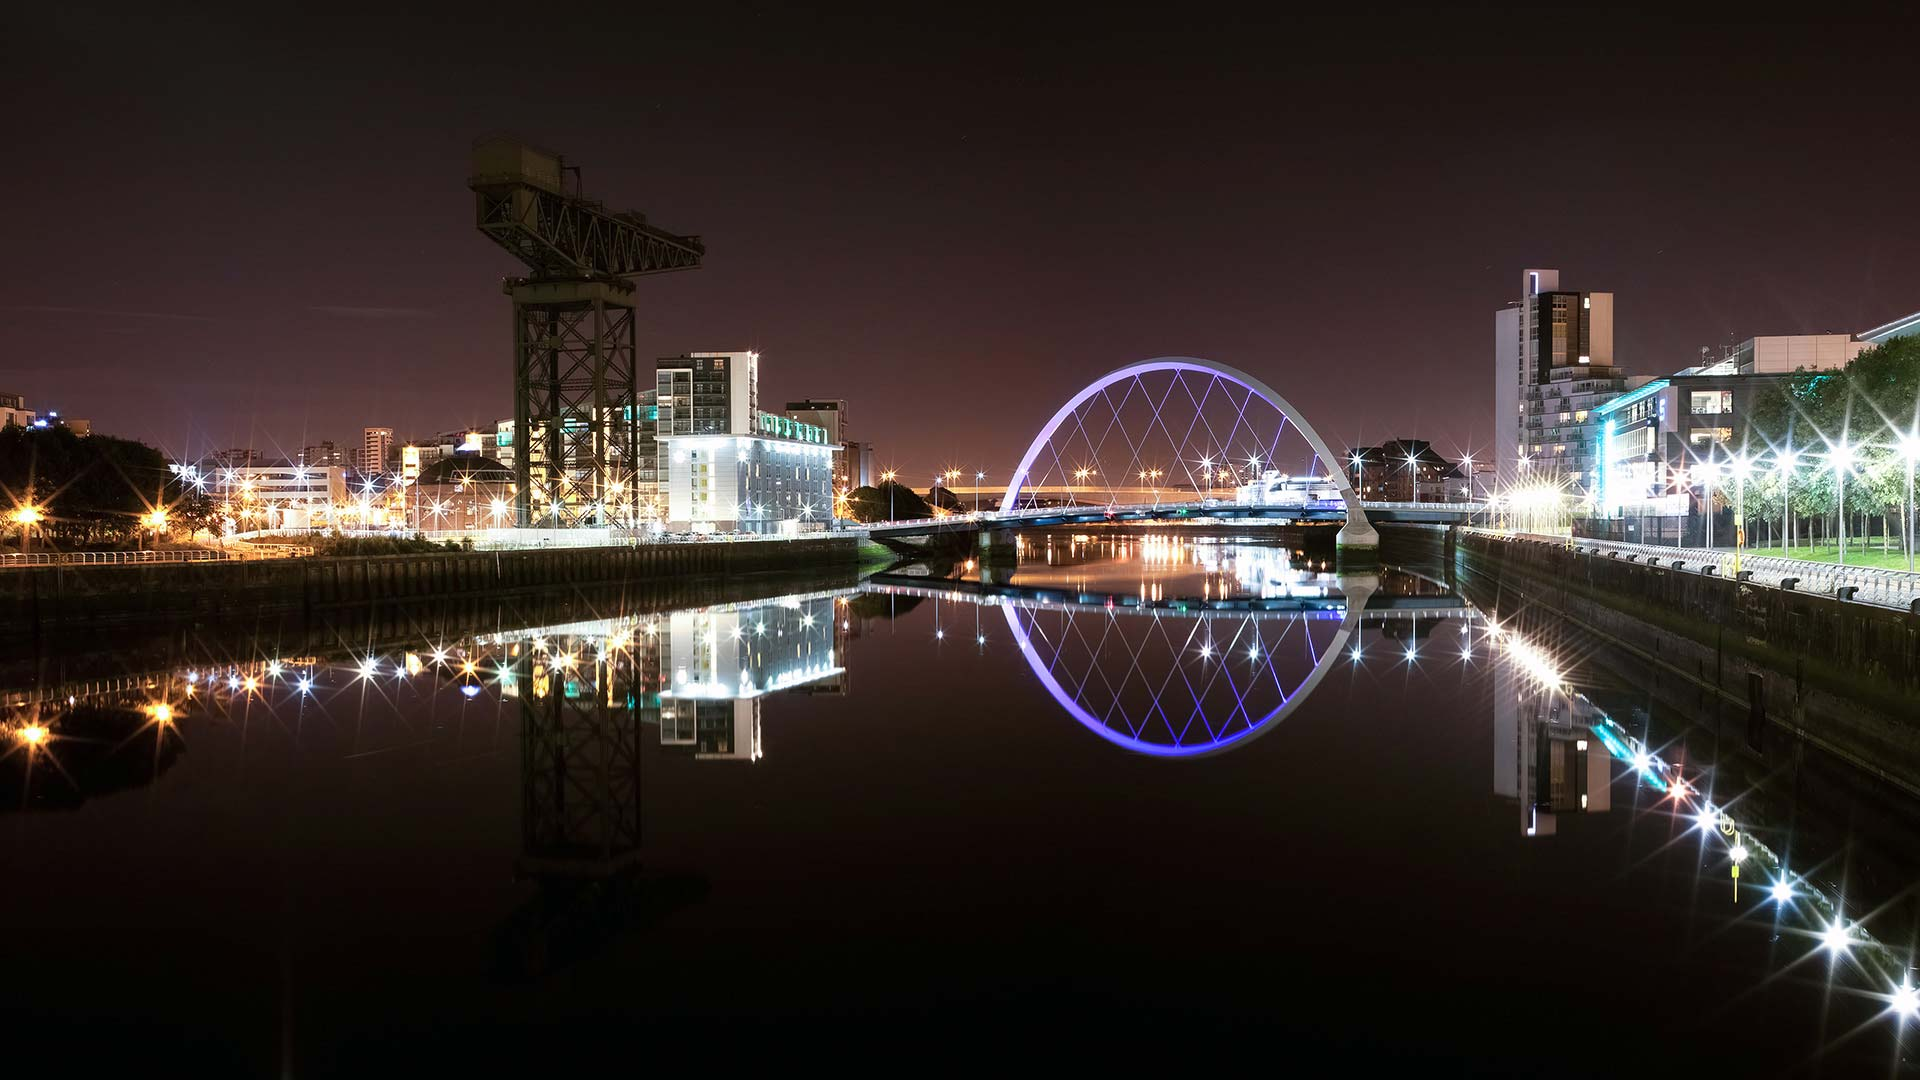 Panorama to illustrate dating in glasgow